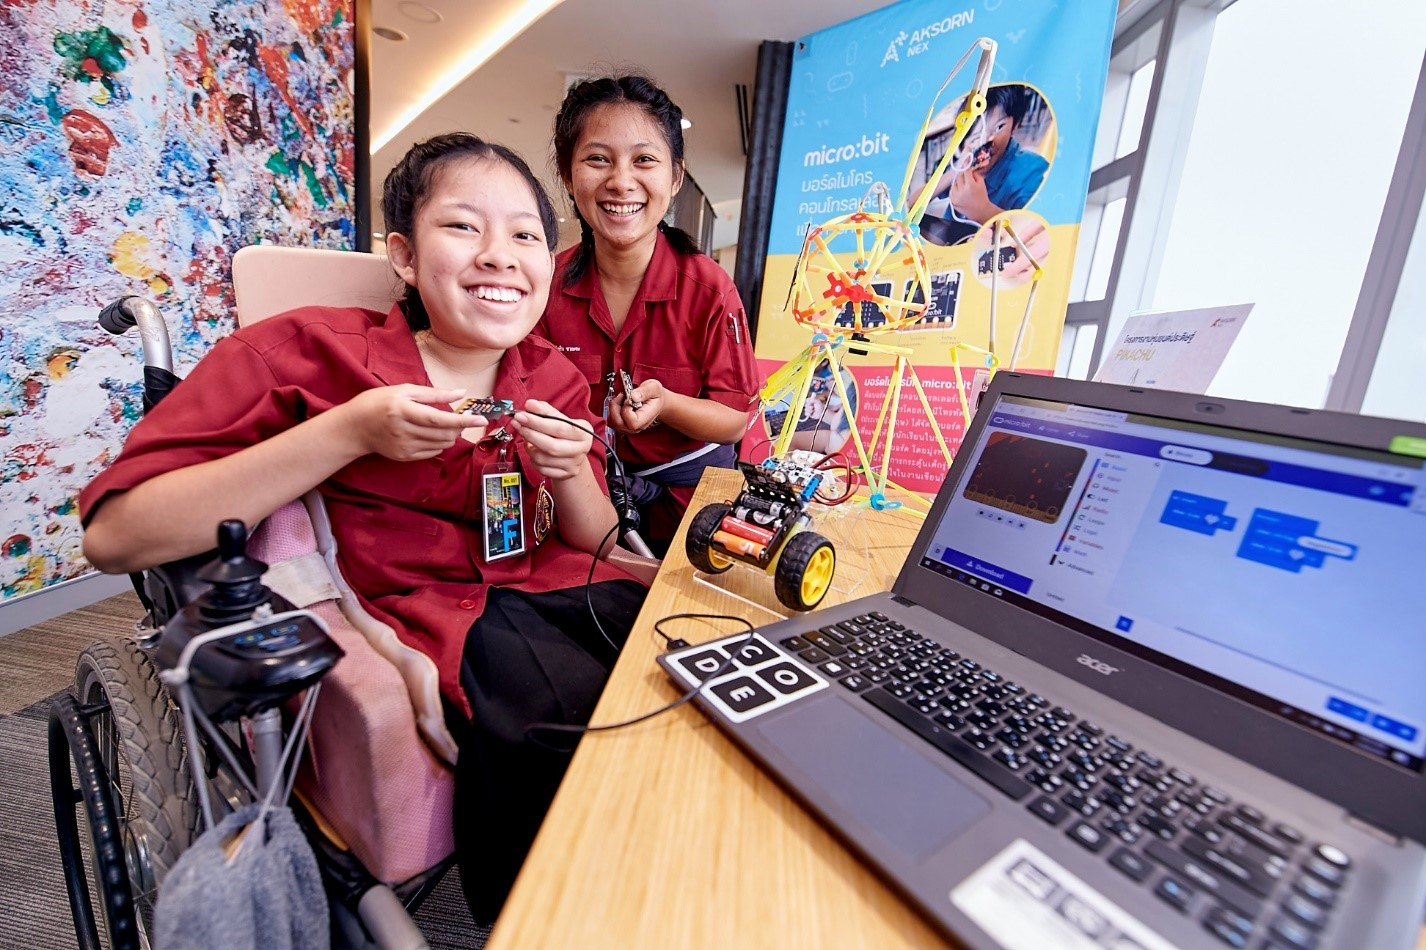 Microsoft APAC Enabler Program helps 110 PwDs in six countries match to roles within the first seven months of launch